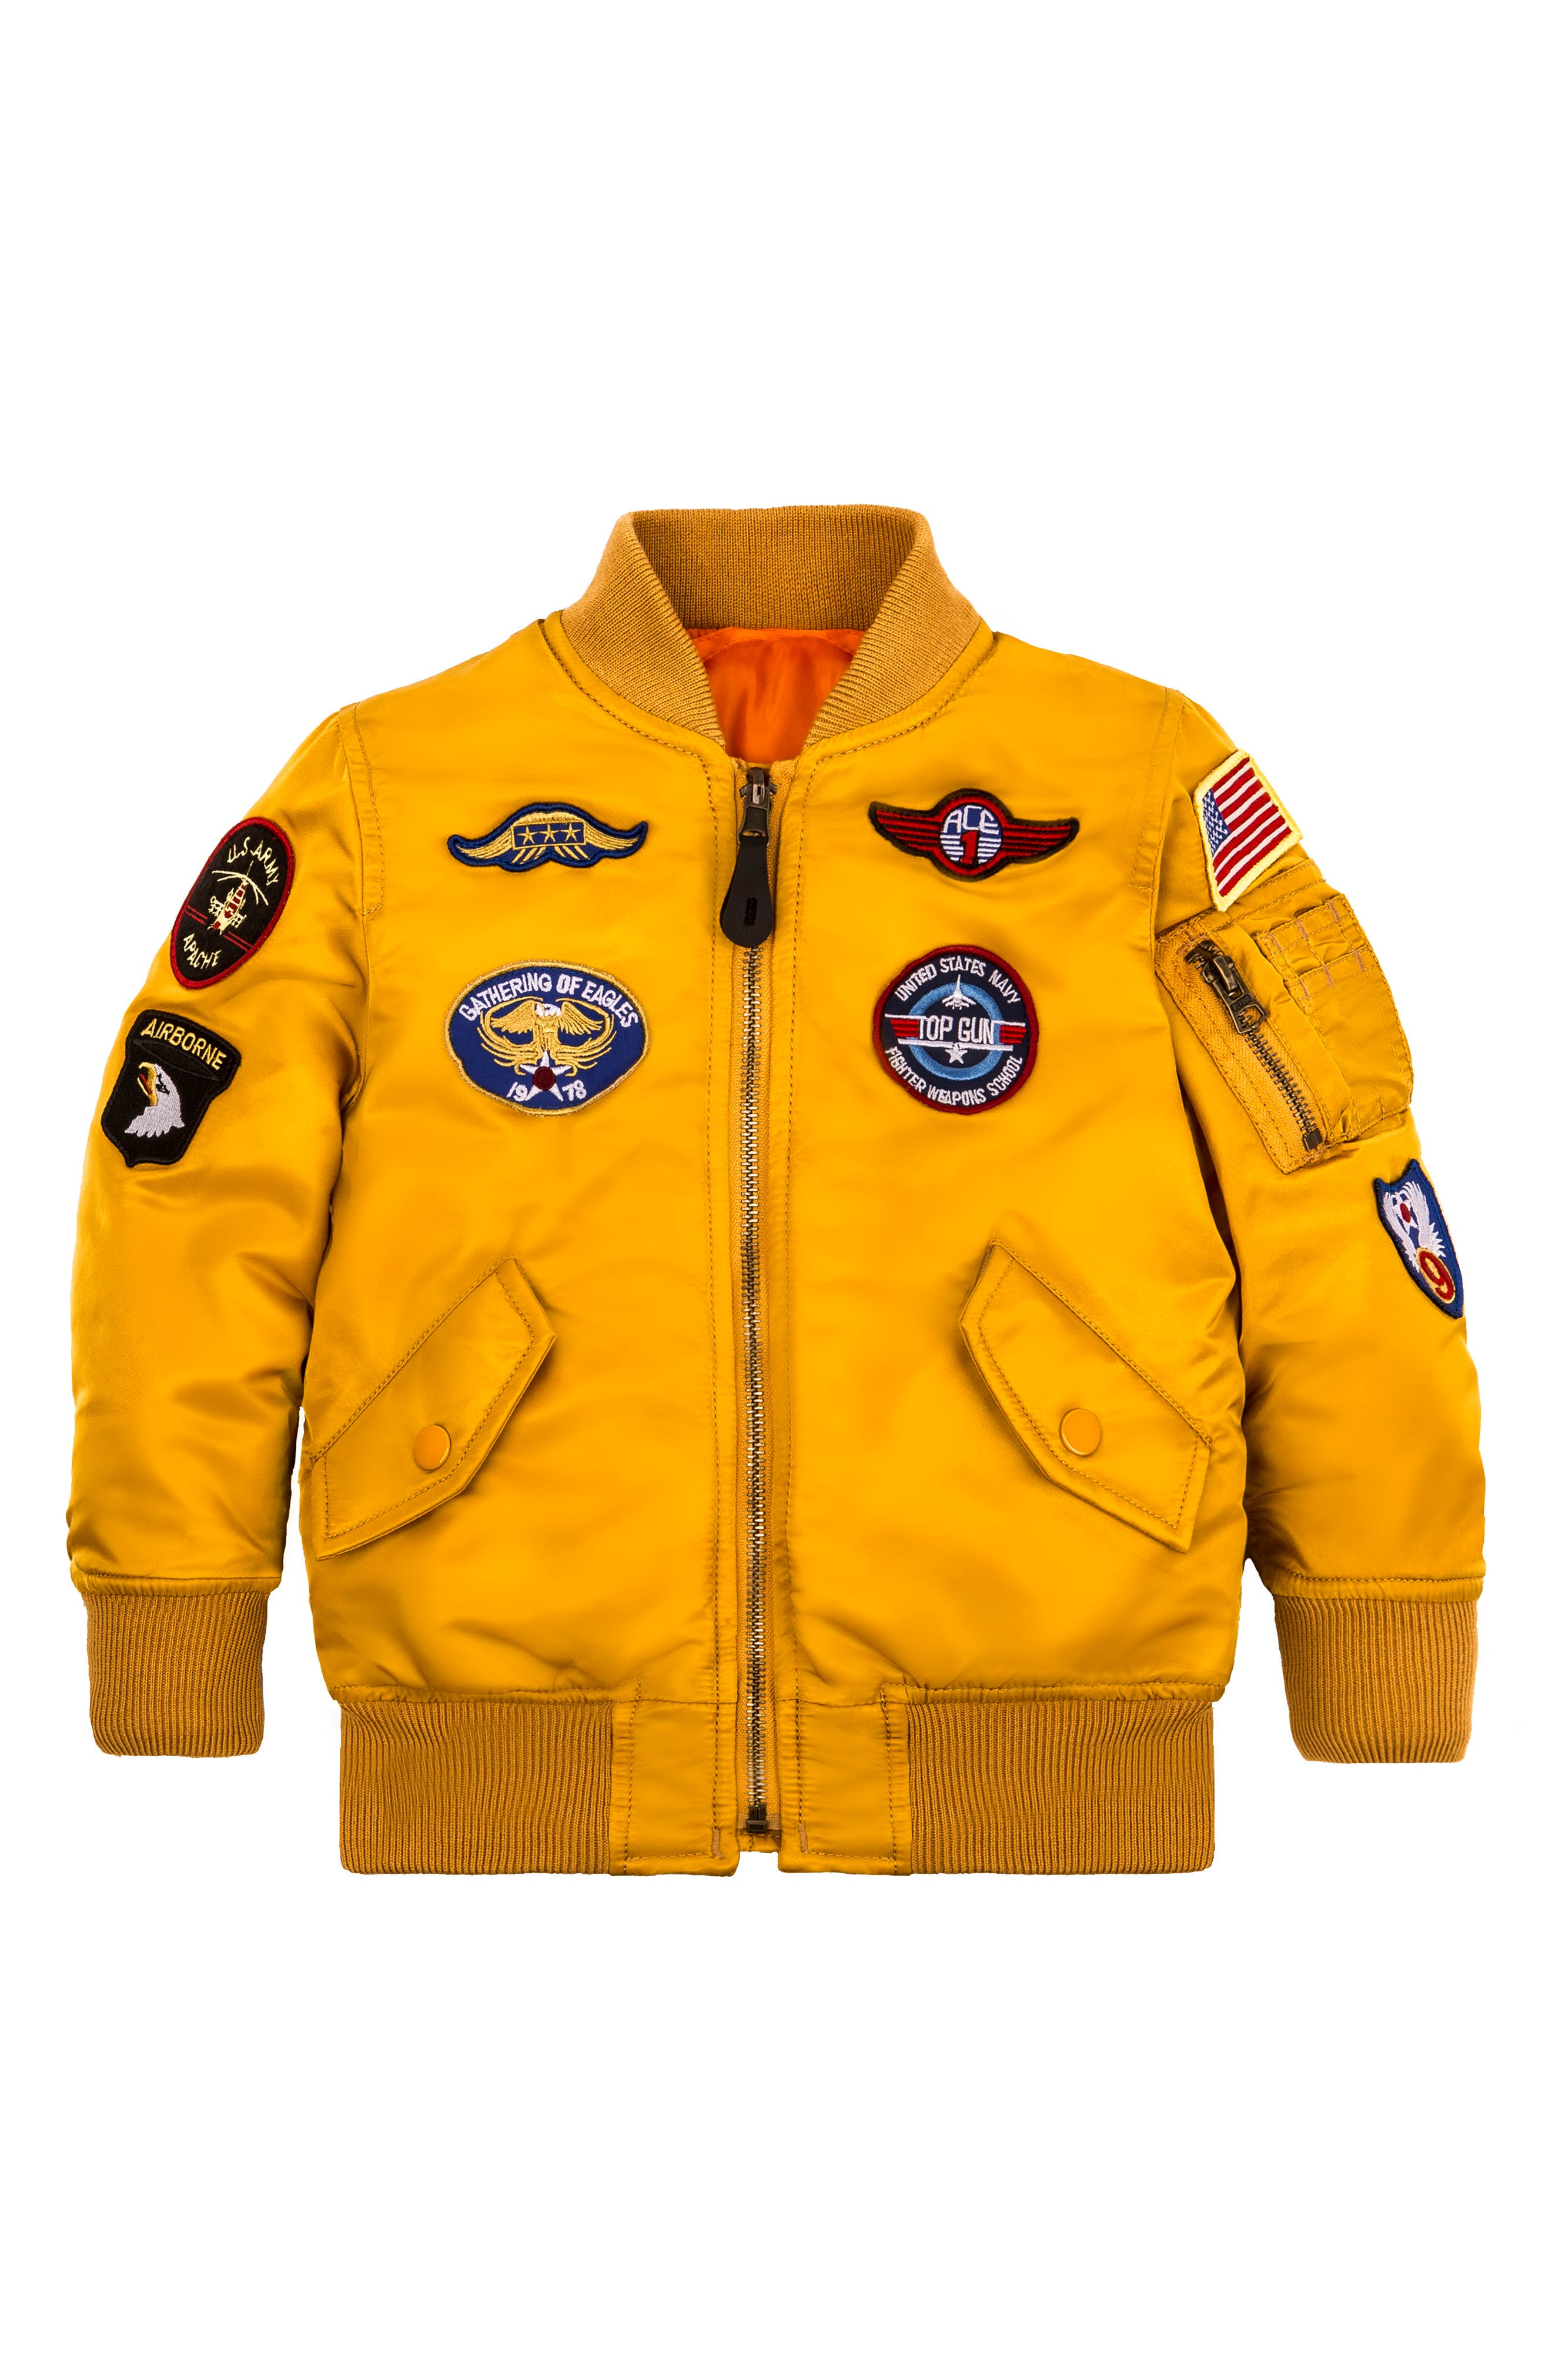 MA-1 Patch Flight Jacket,                             Main thumbnail 1, color,                             GOLDEN YELLOW